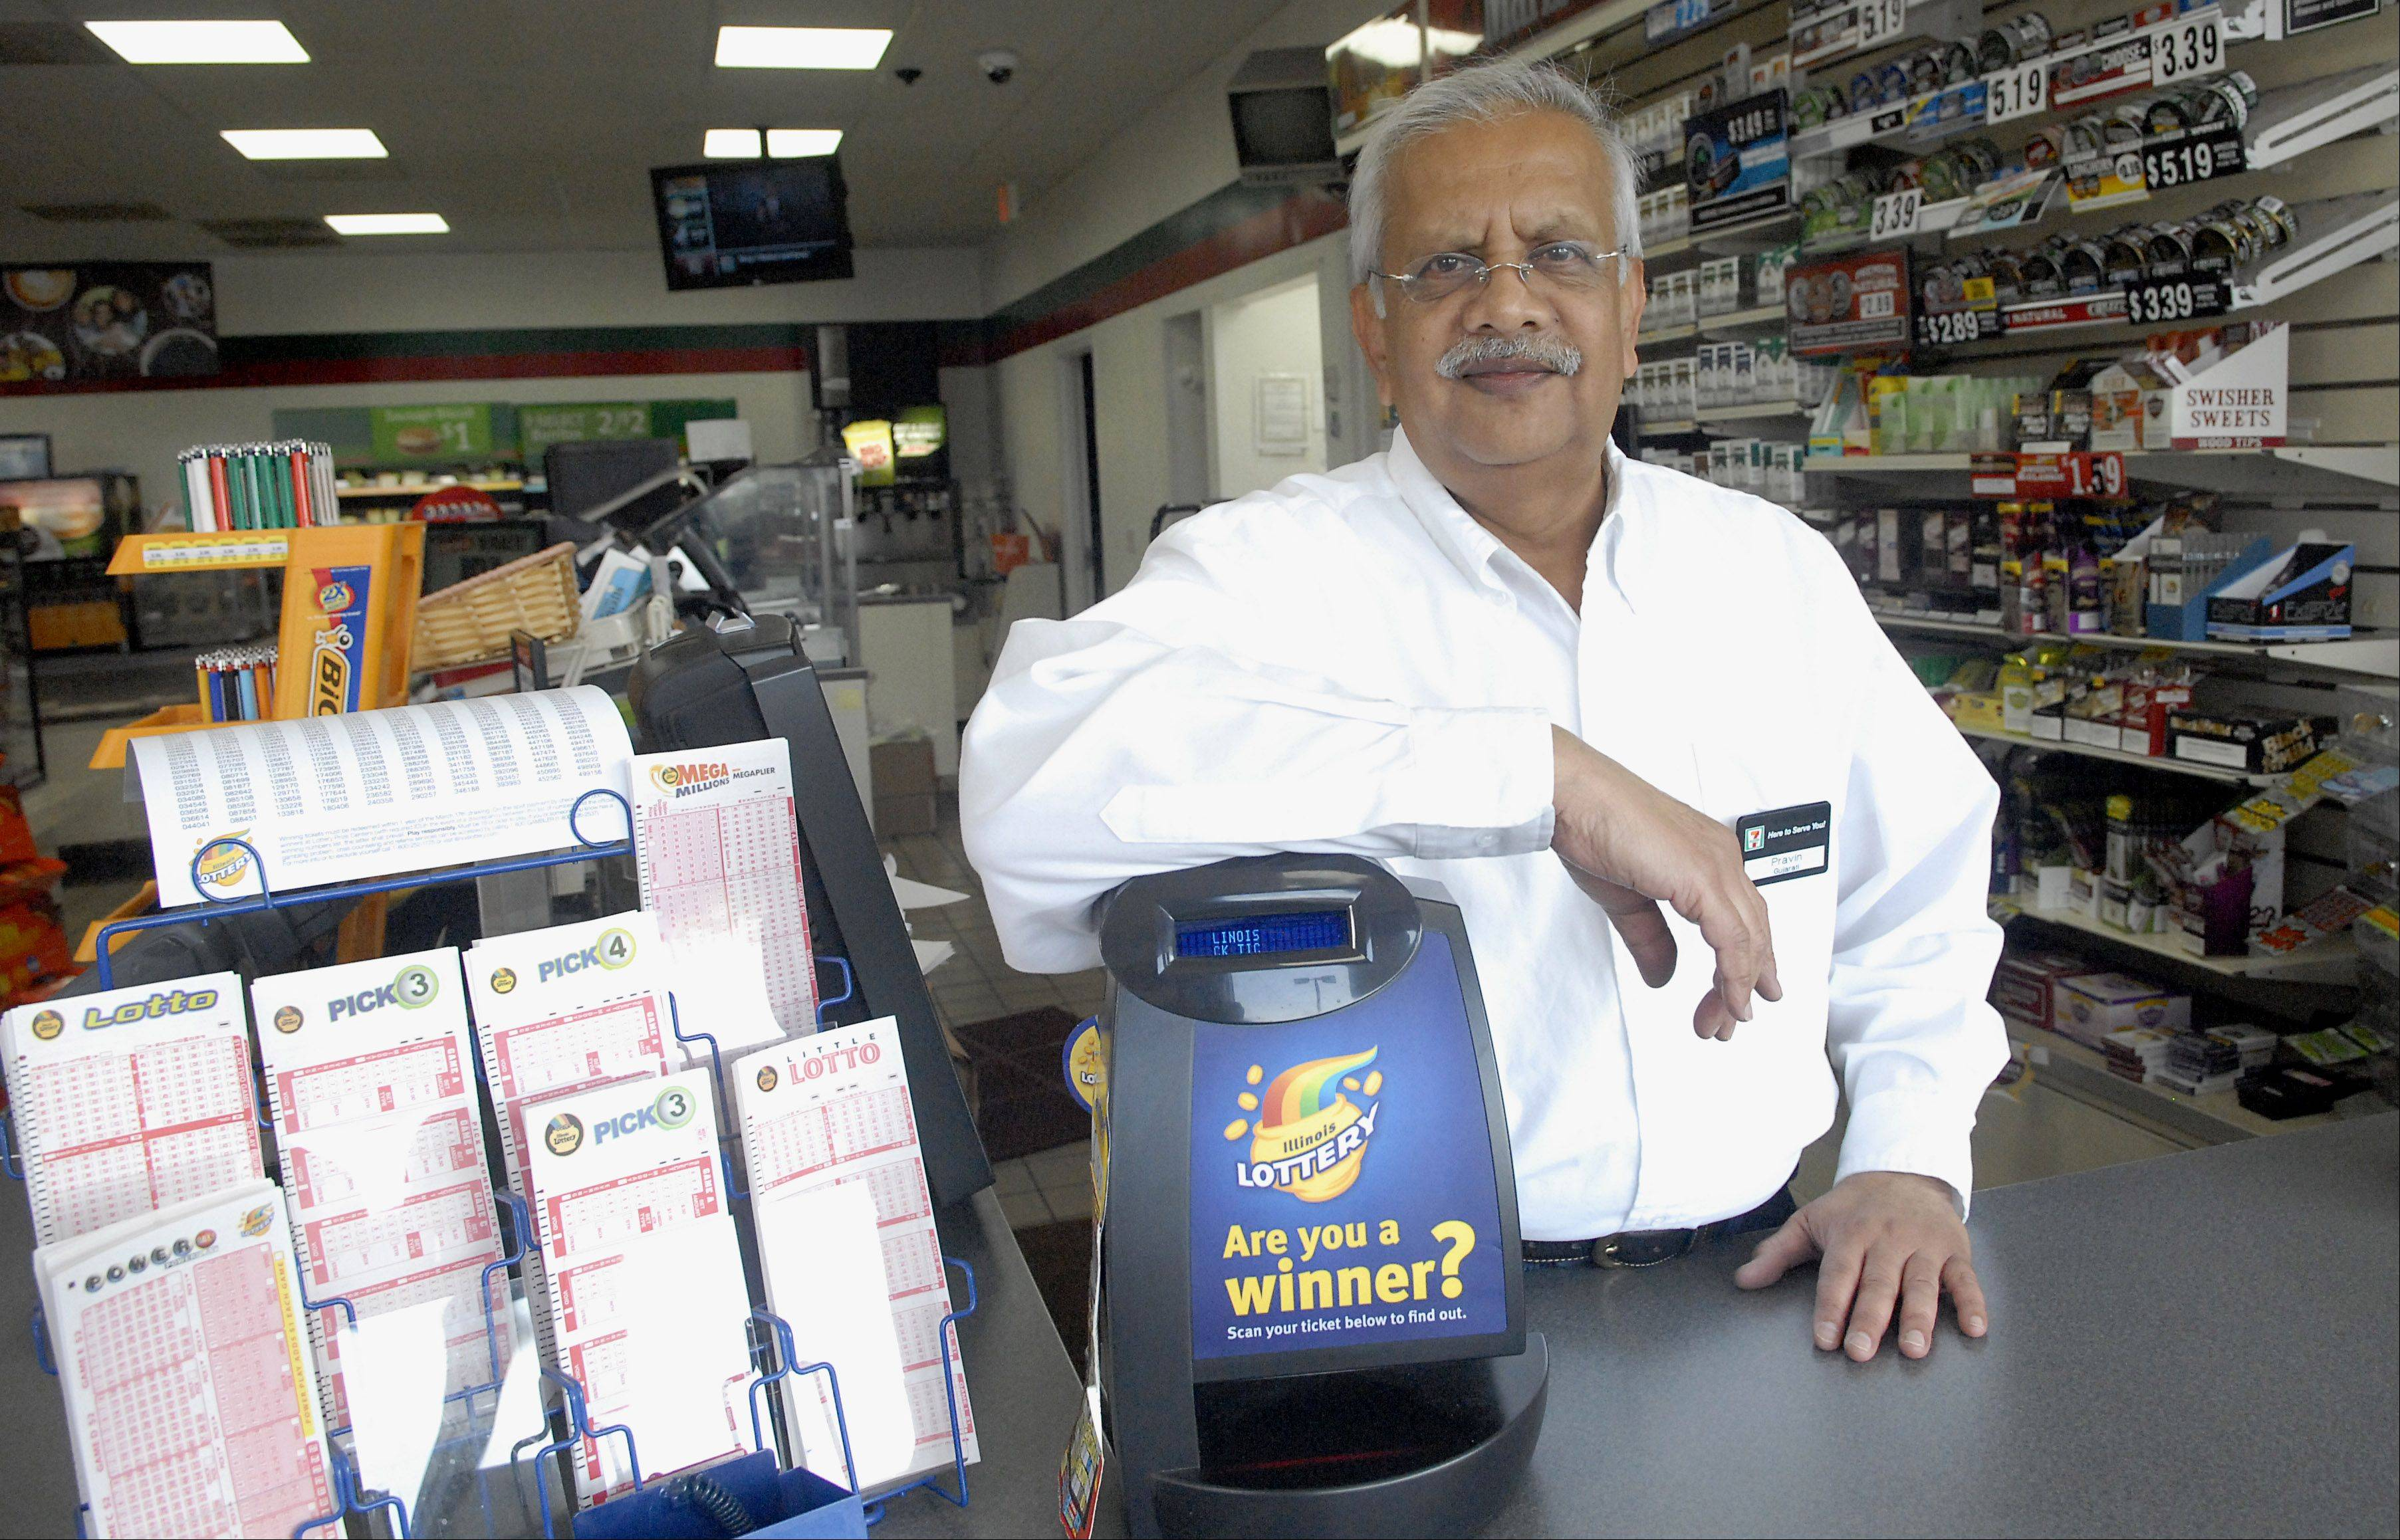 Laura Stoecker/lstoecker@dailyherald.comA $250,000 Mega Millions winning ticket was purchased at the 7-11 at 305 N. Barrington Rd in Streamwood owned by Pravin Patel. Patel isn't sure who the winner is yet.